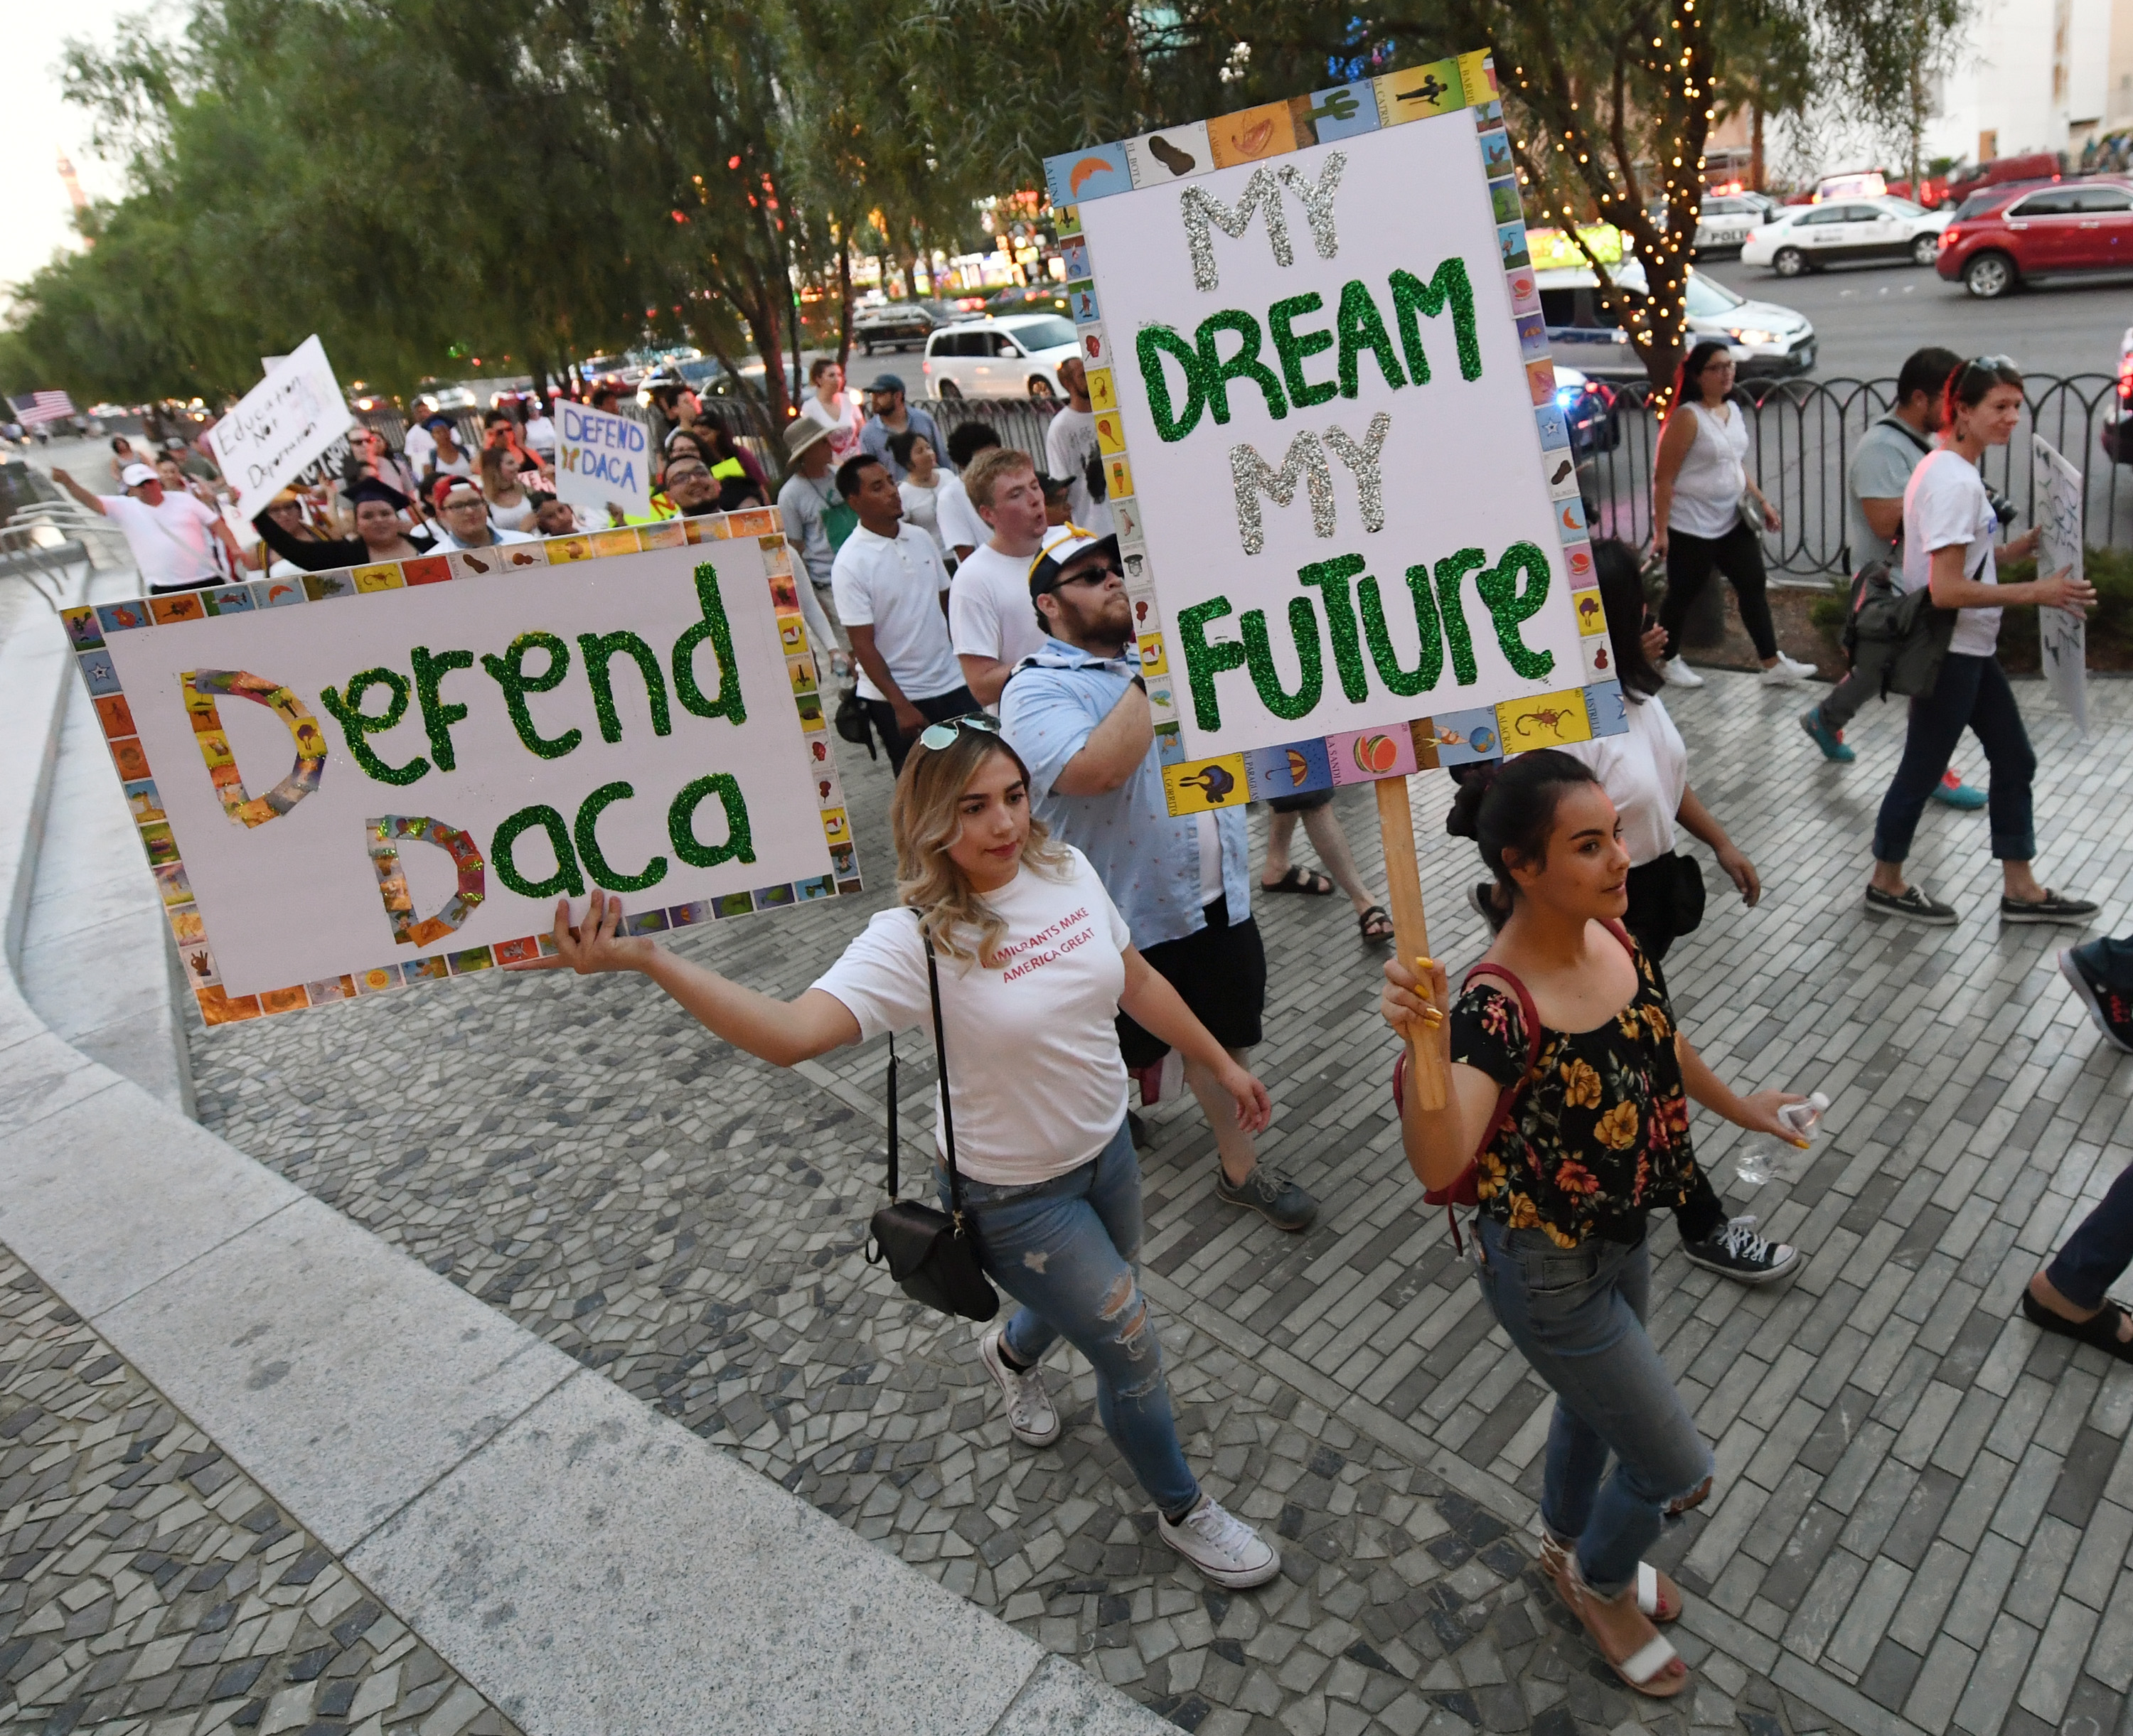 Federal Judge Orders the Trump Administration to Accept New DACA Applications